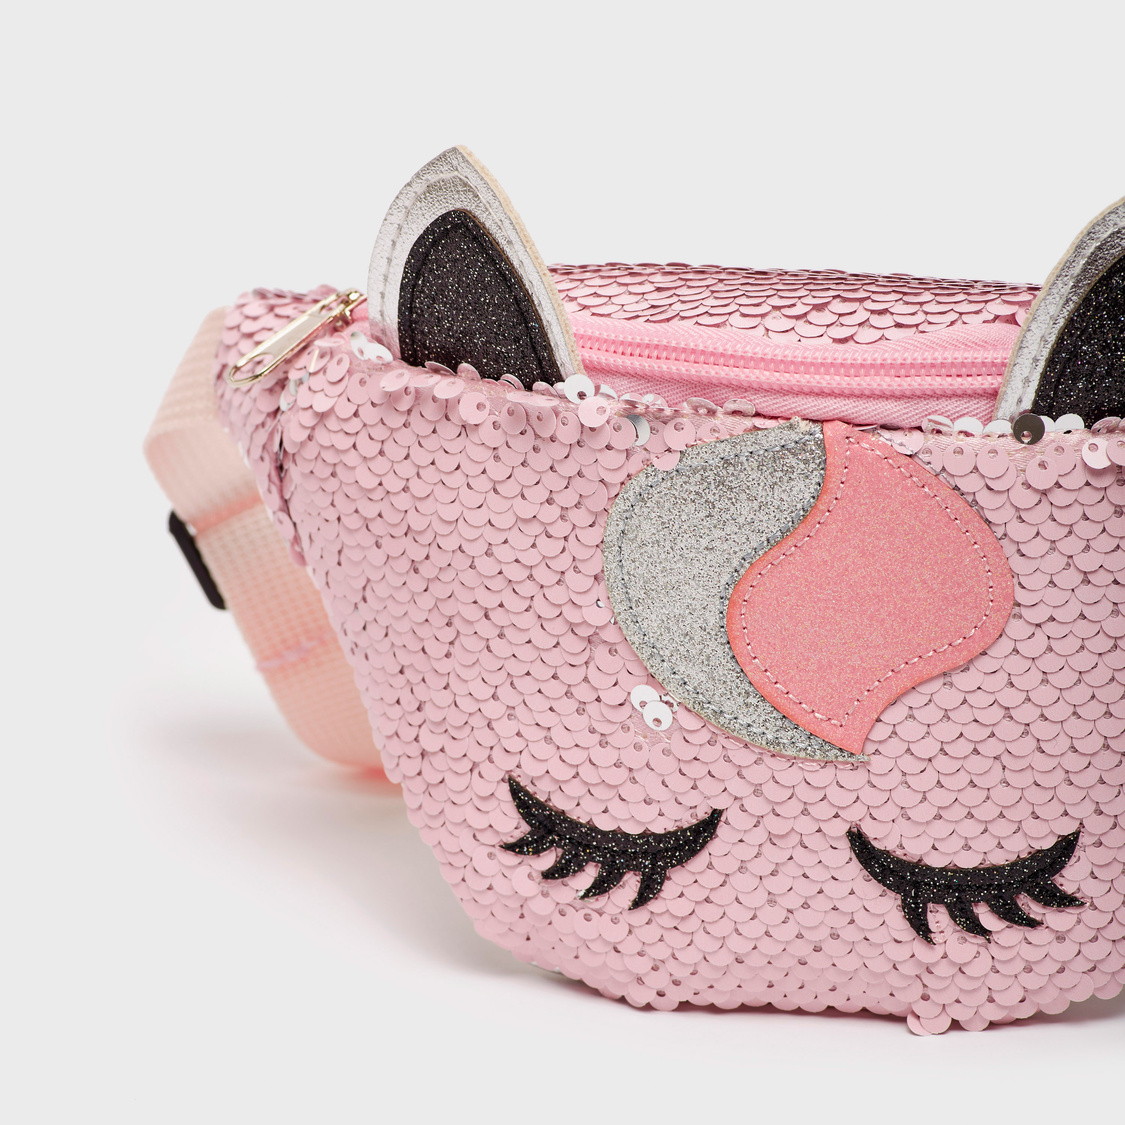 Sequin Detail Fanny Pack with Zip Closure and Adjustable Strap